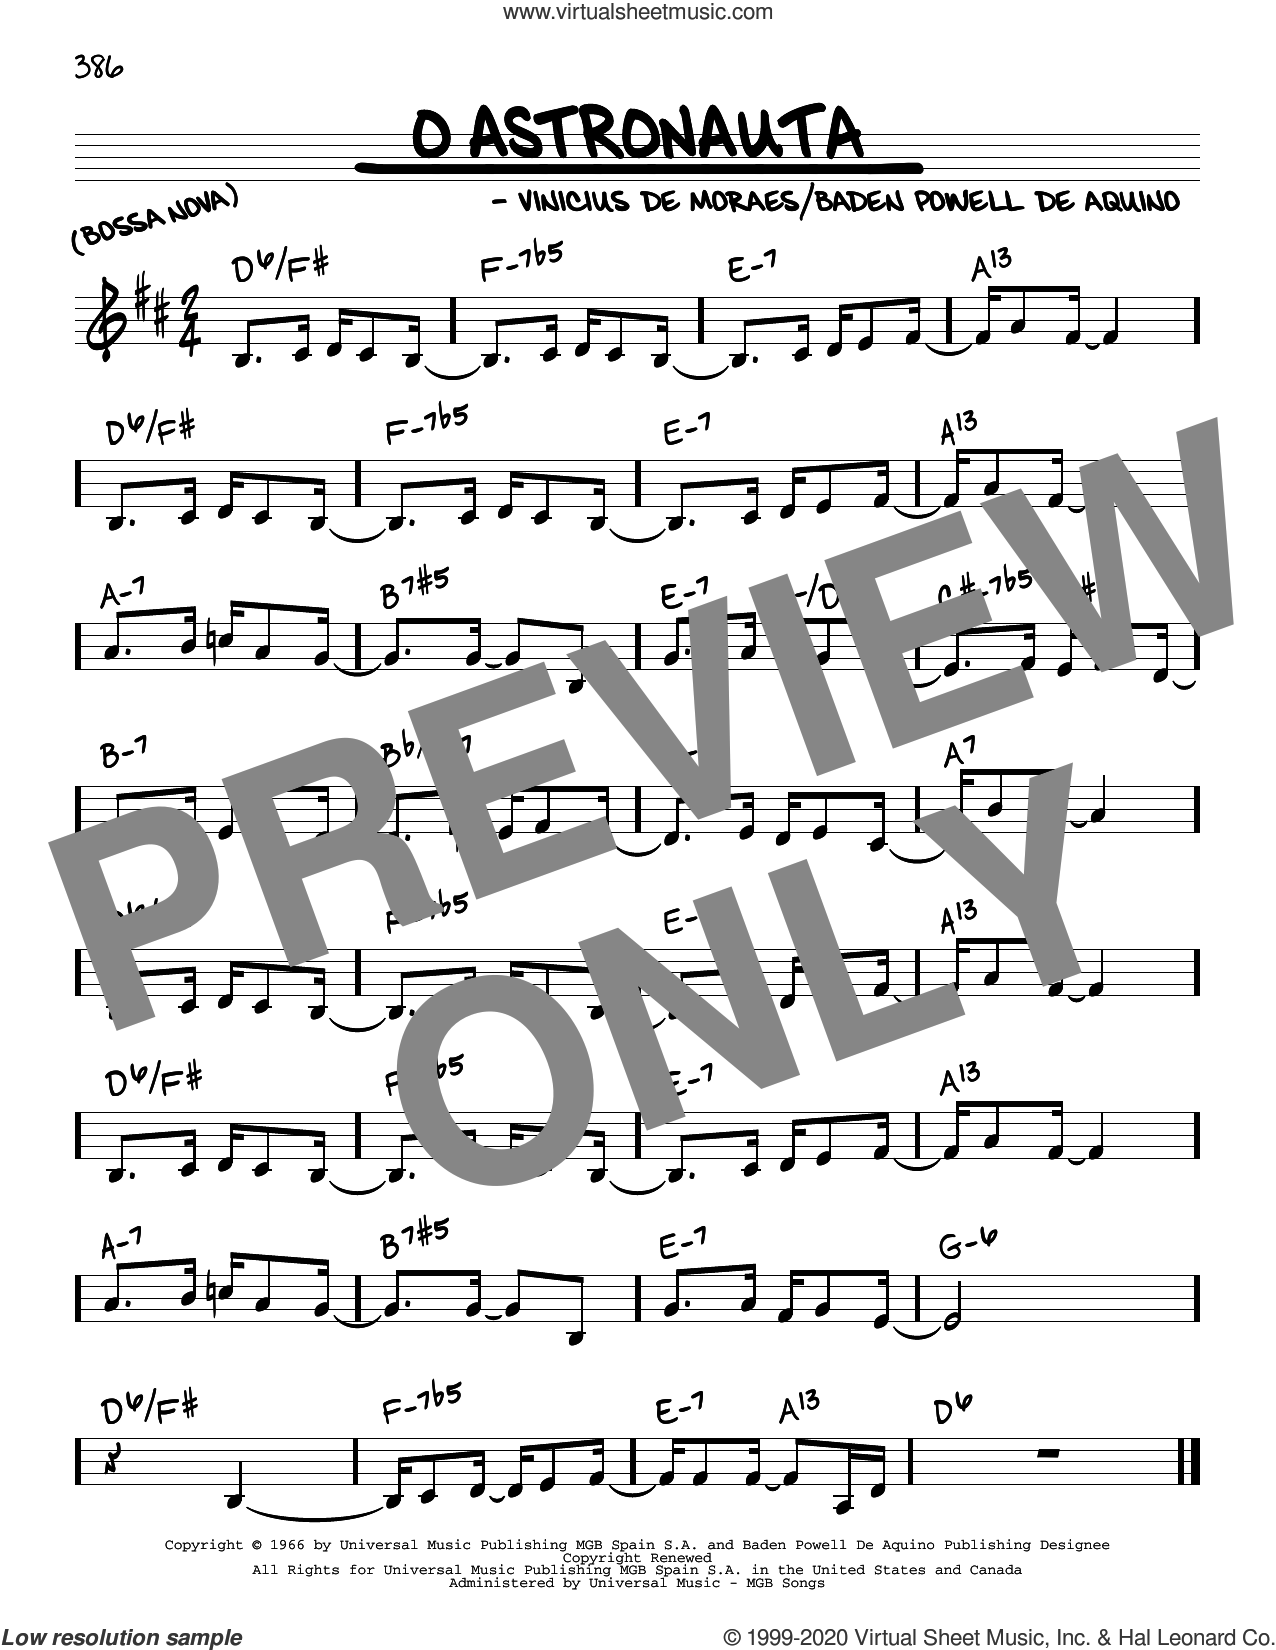 O Astronauta sheet music for voice and other instruments (real book) by Vinicius de Moraes and Baden Powell De Aquino, intermediate skill level